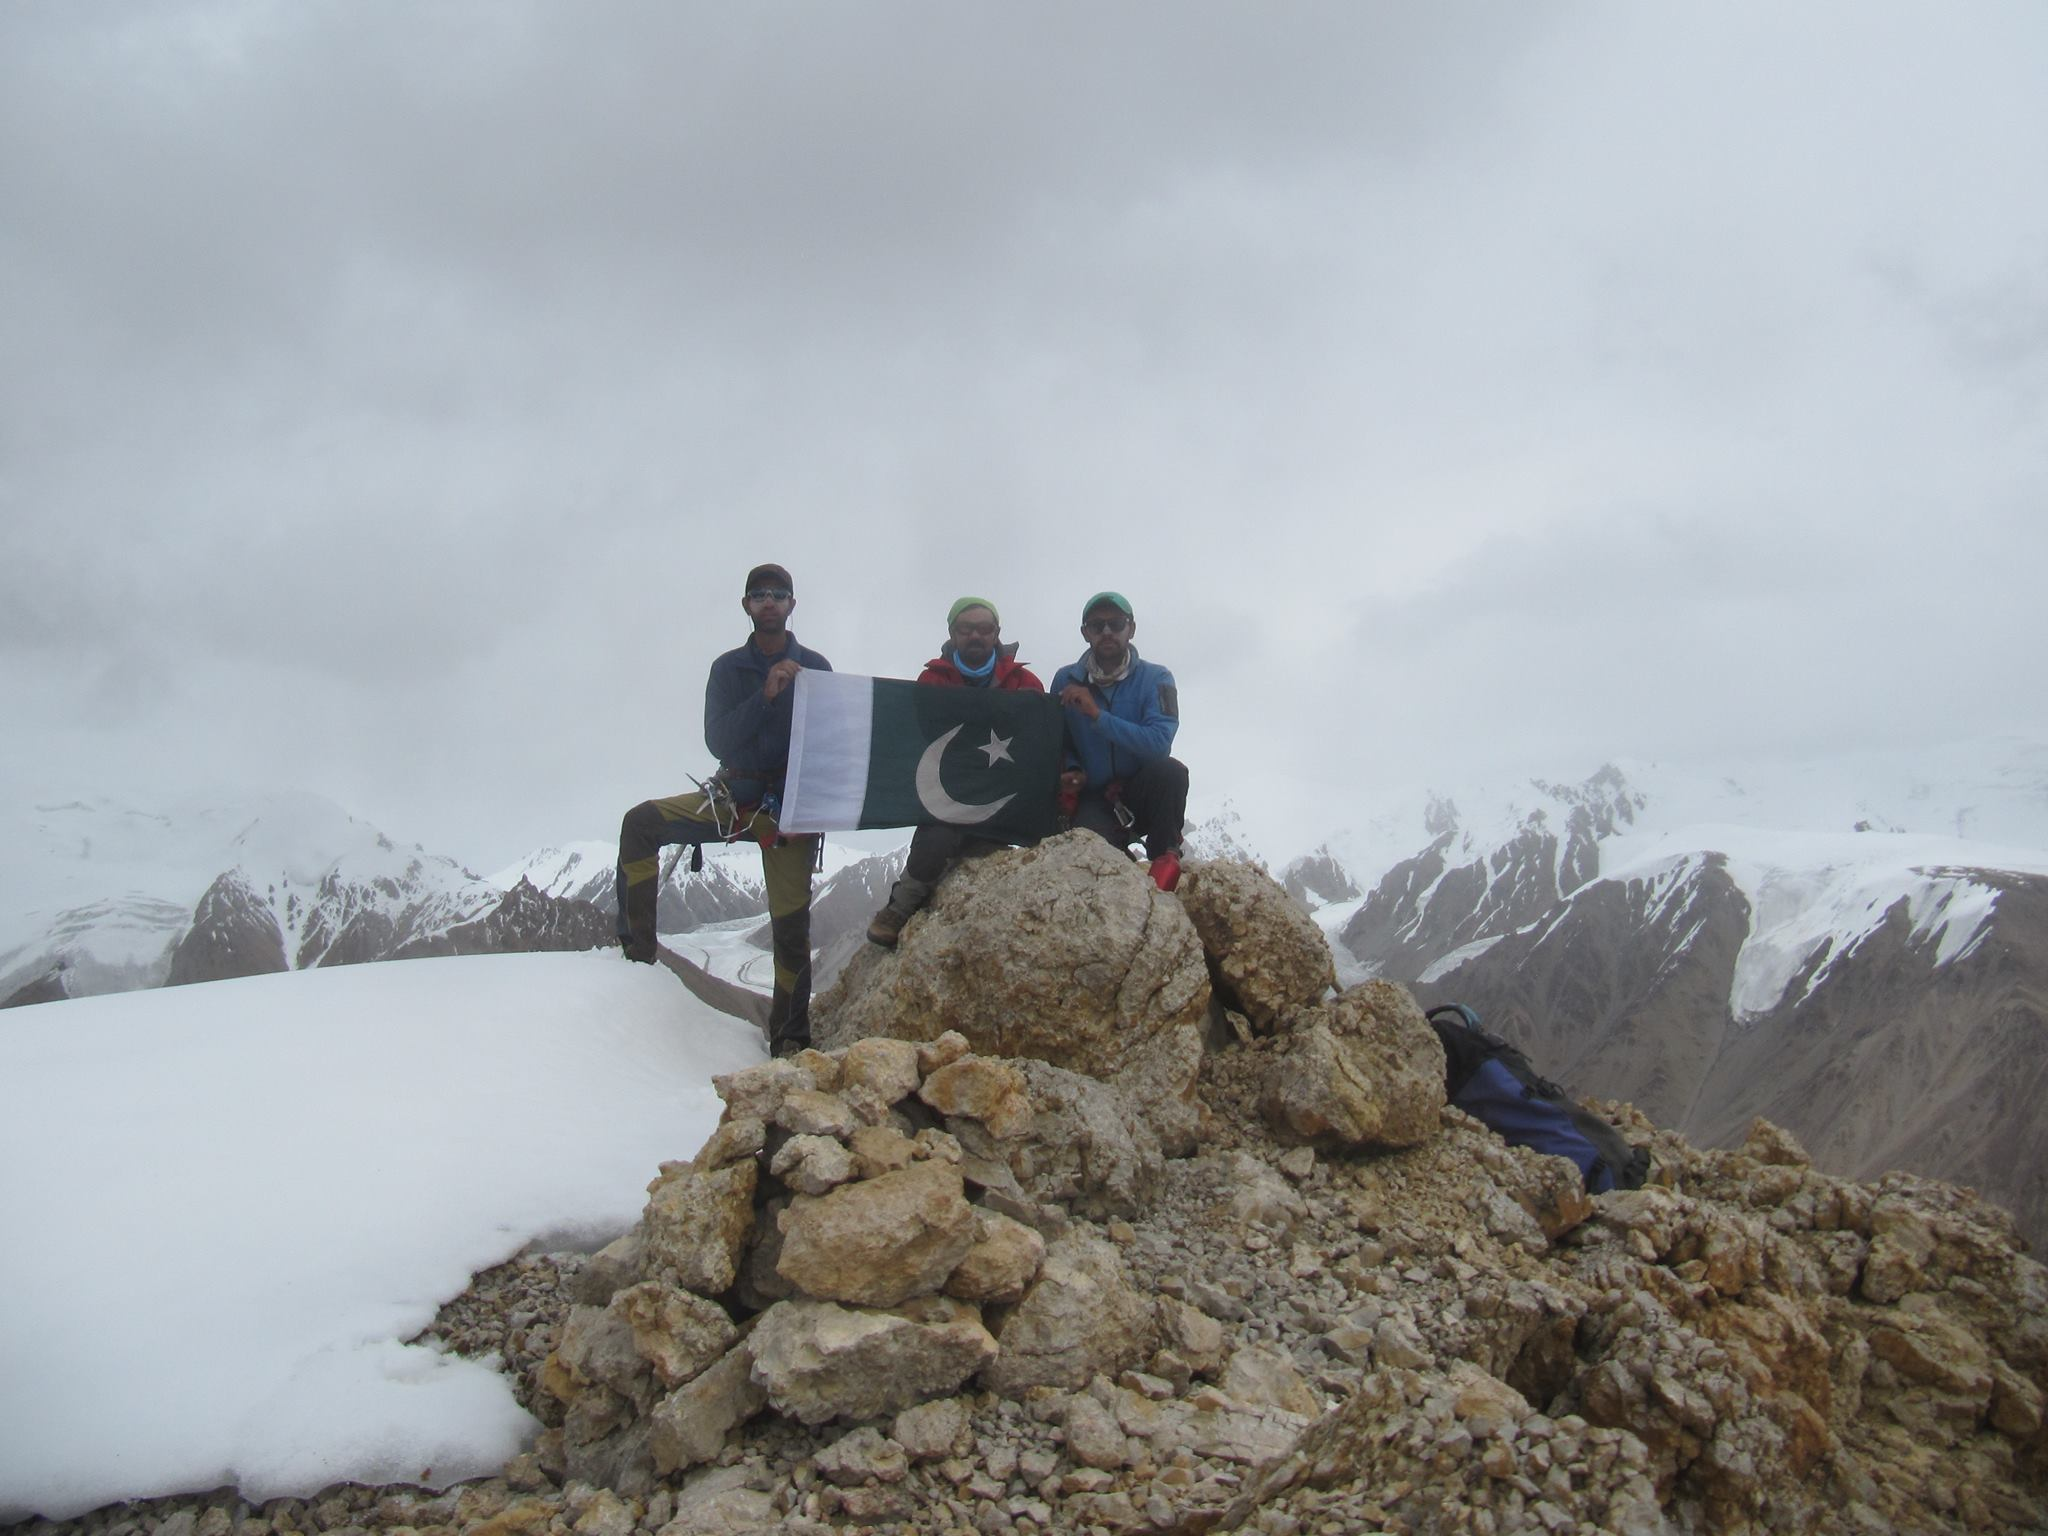 Three Shimshali rock climbers summit 6000 m high 'Sher Peak'